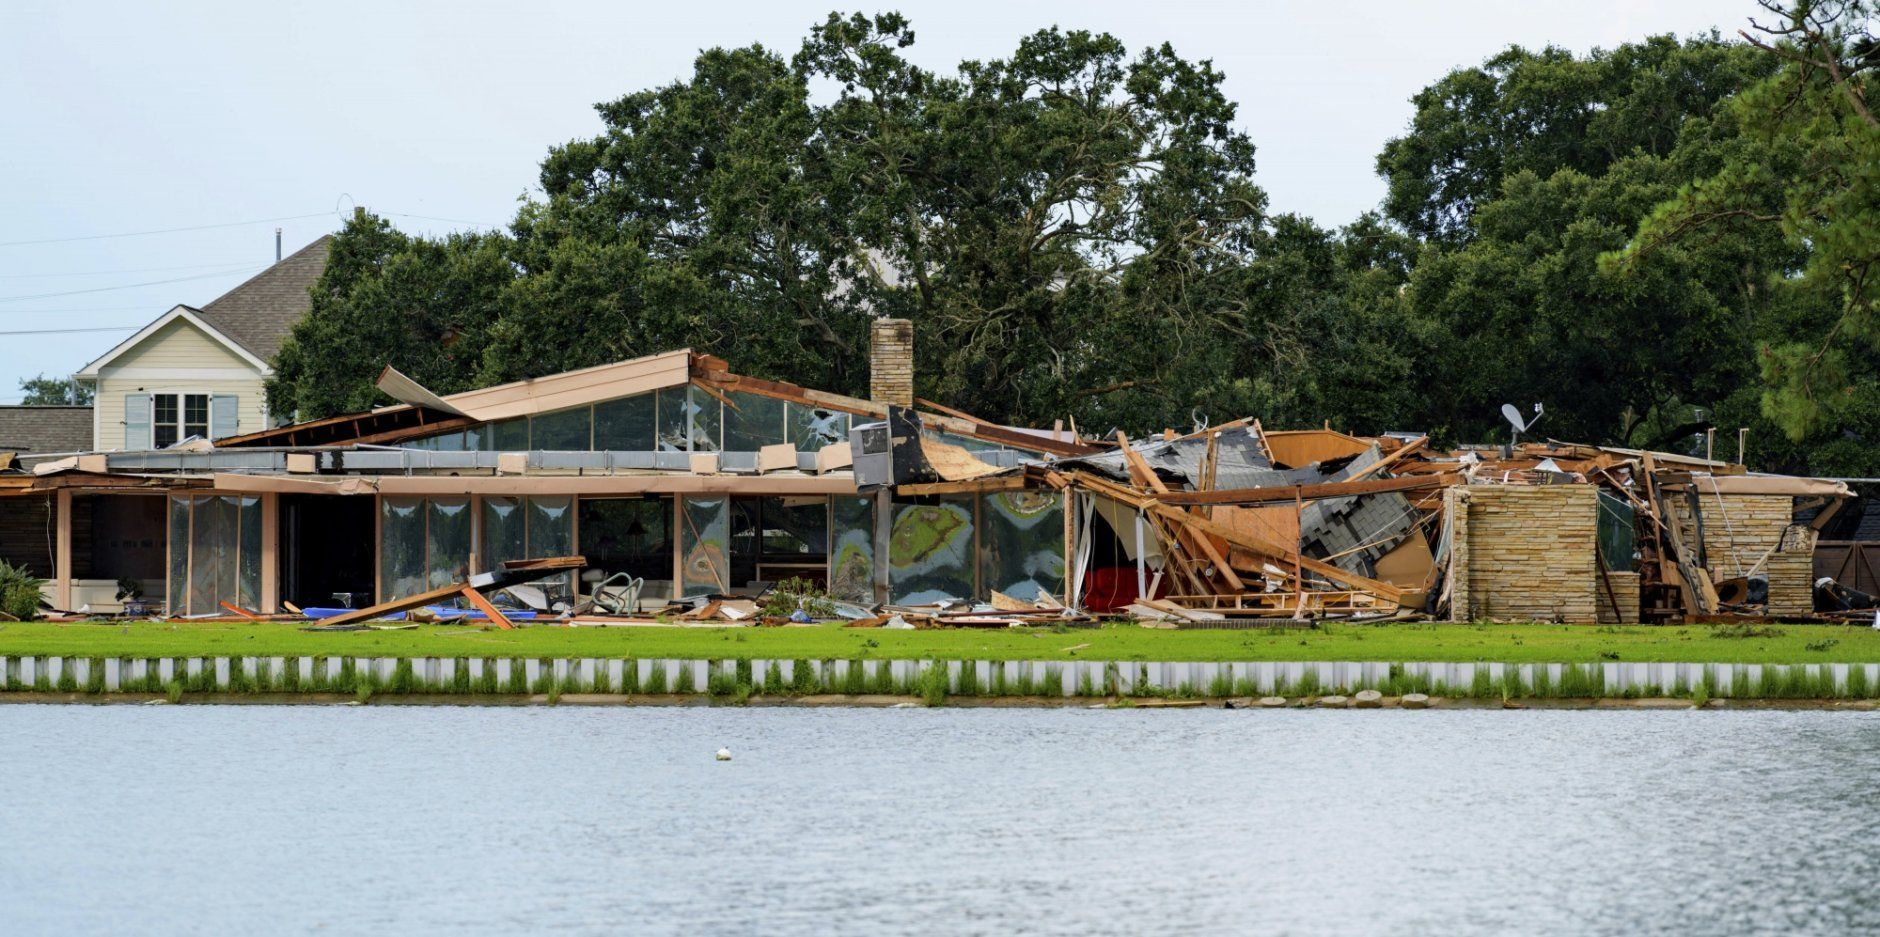 This photo shows the damaged home of Eric and Indra Ehlenberger in New Orleans on Wednesday, July 10, 2019, following a storm that went through the area. The storm swamped New Orleans streets and paralyzed traffic Wednesday as concerns grew that even worse weather was on the way: a possible hurricane that could strike the Gulf Coast and raise the Mississippi River to the brim of the city's protective levees. (AP Photo/Matthew Hinton)